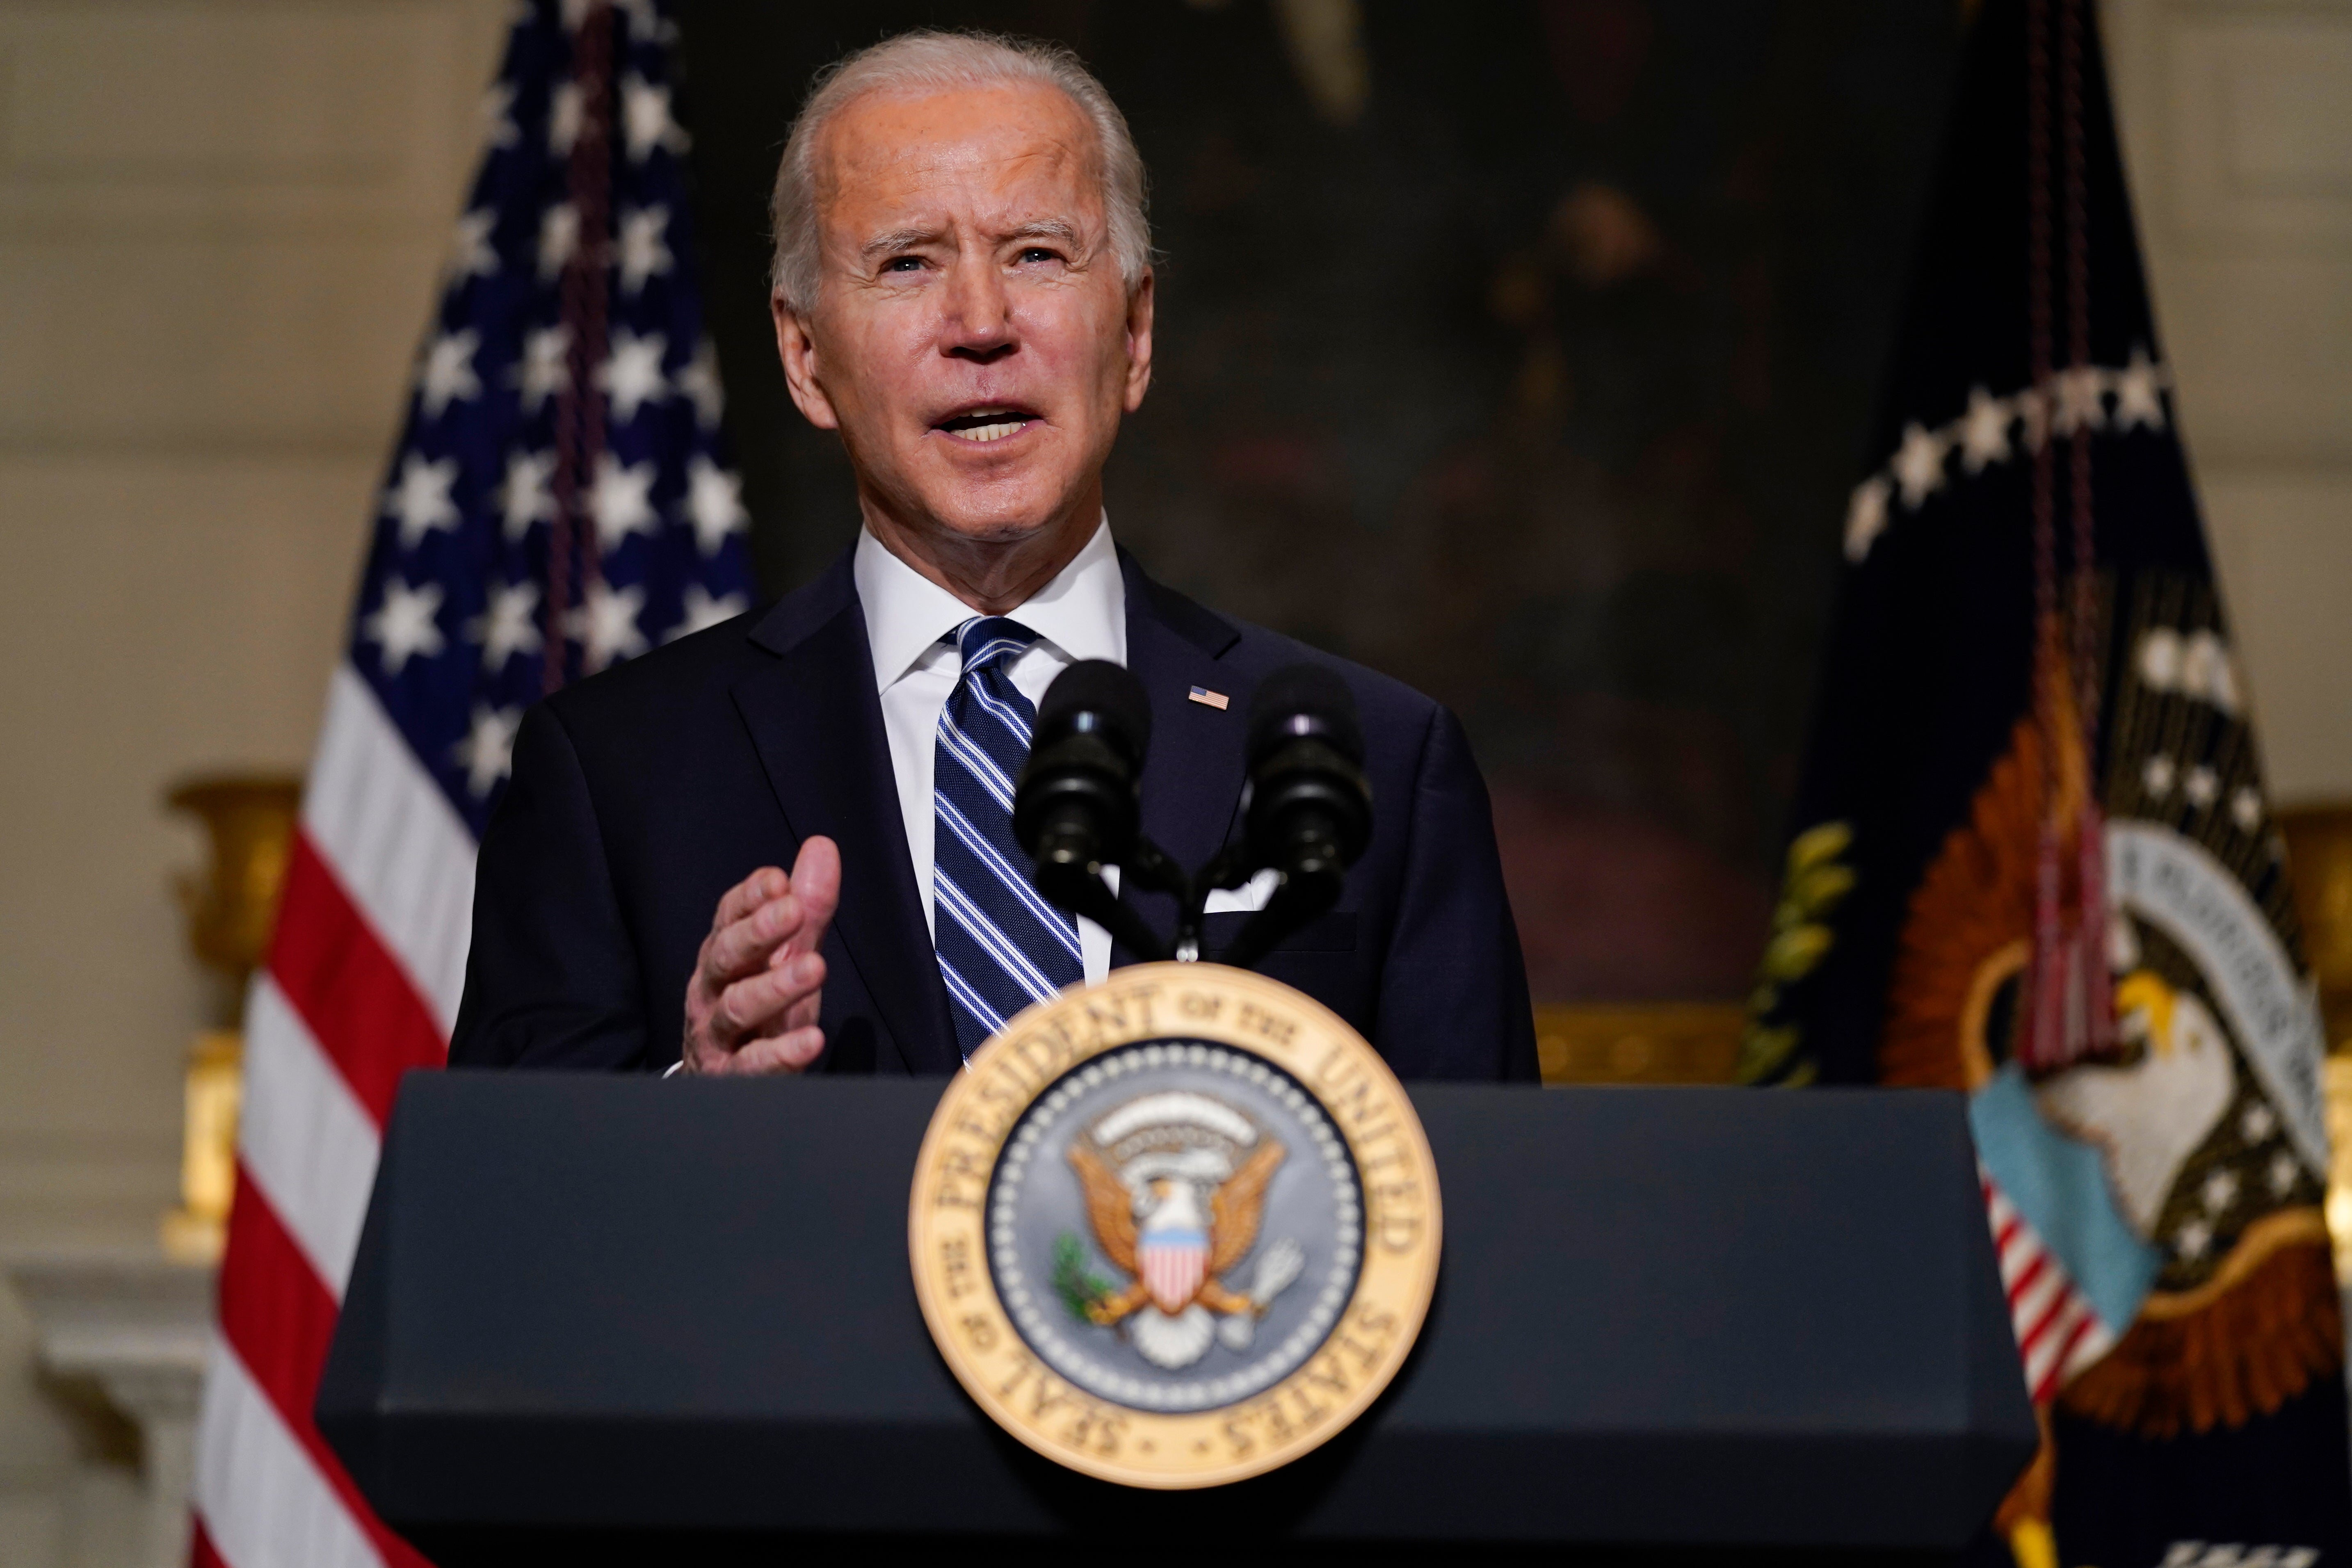 New Biden health care orders begin to unspool Trump policies Joe Biden administration policies Barack Obama judges